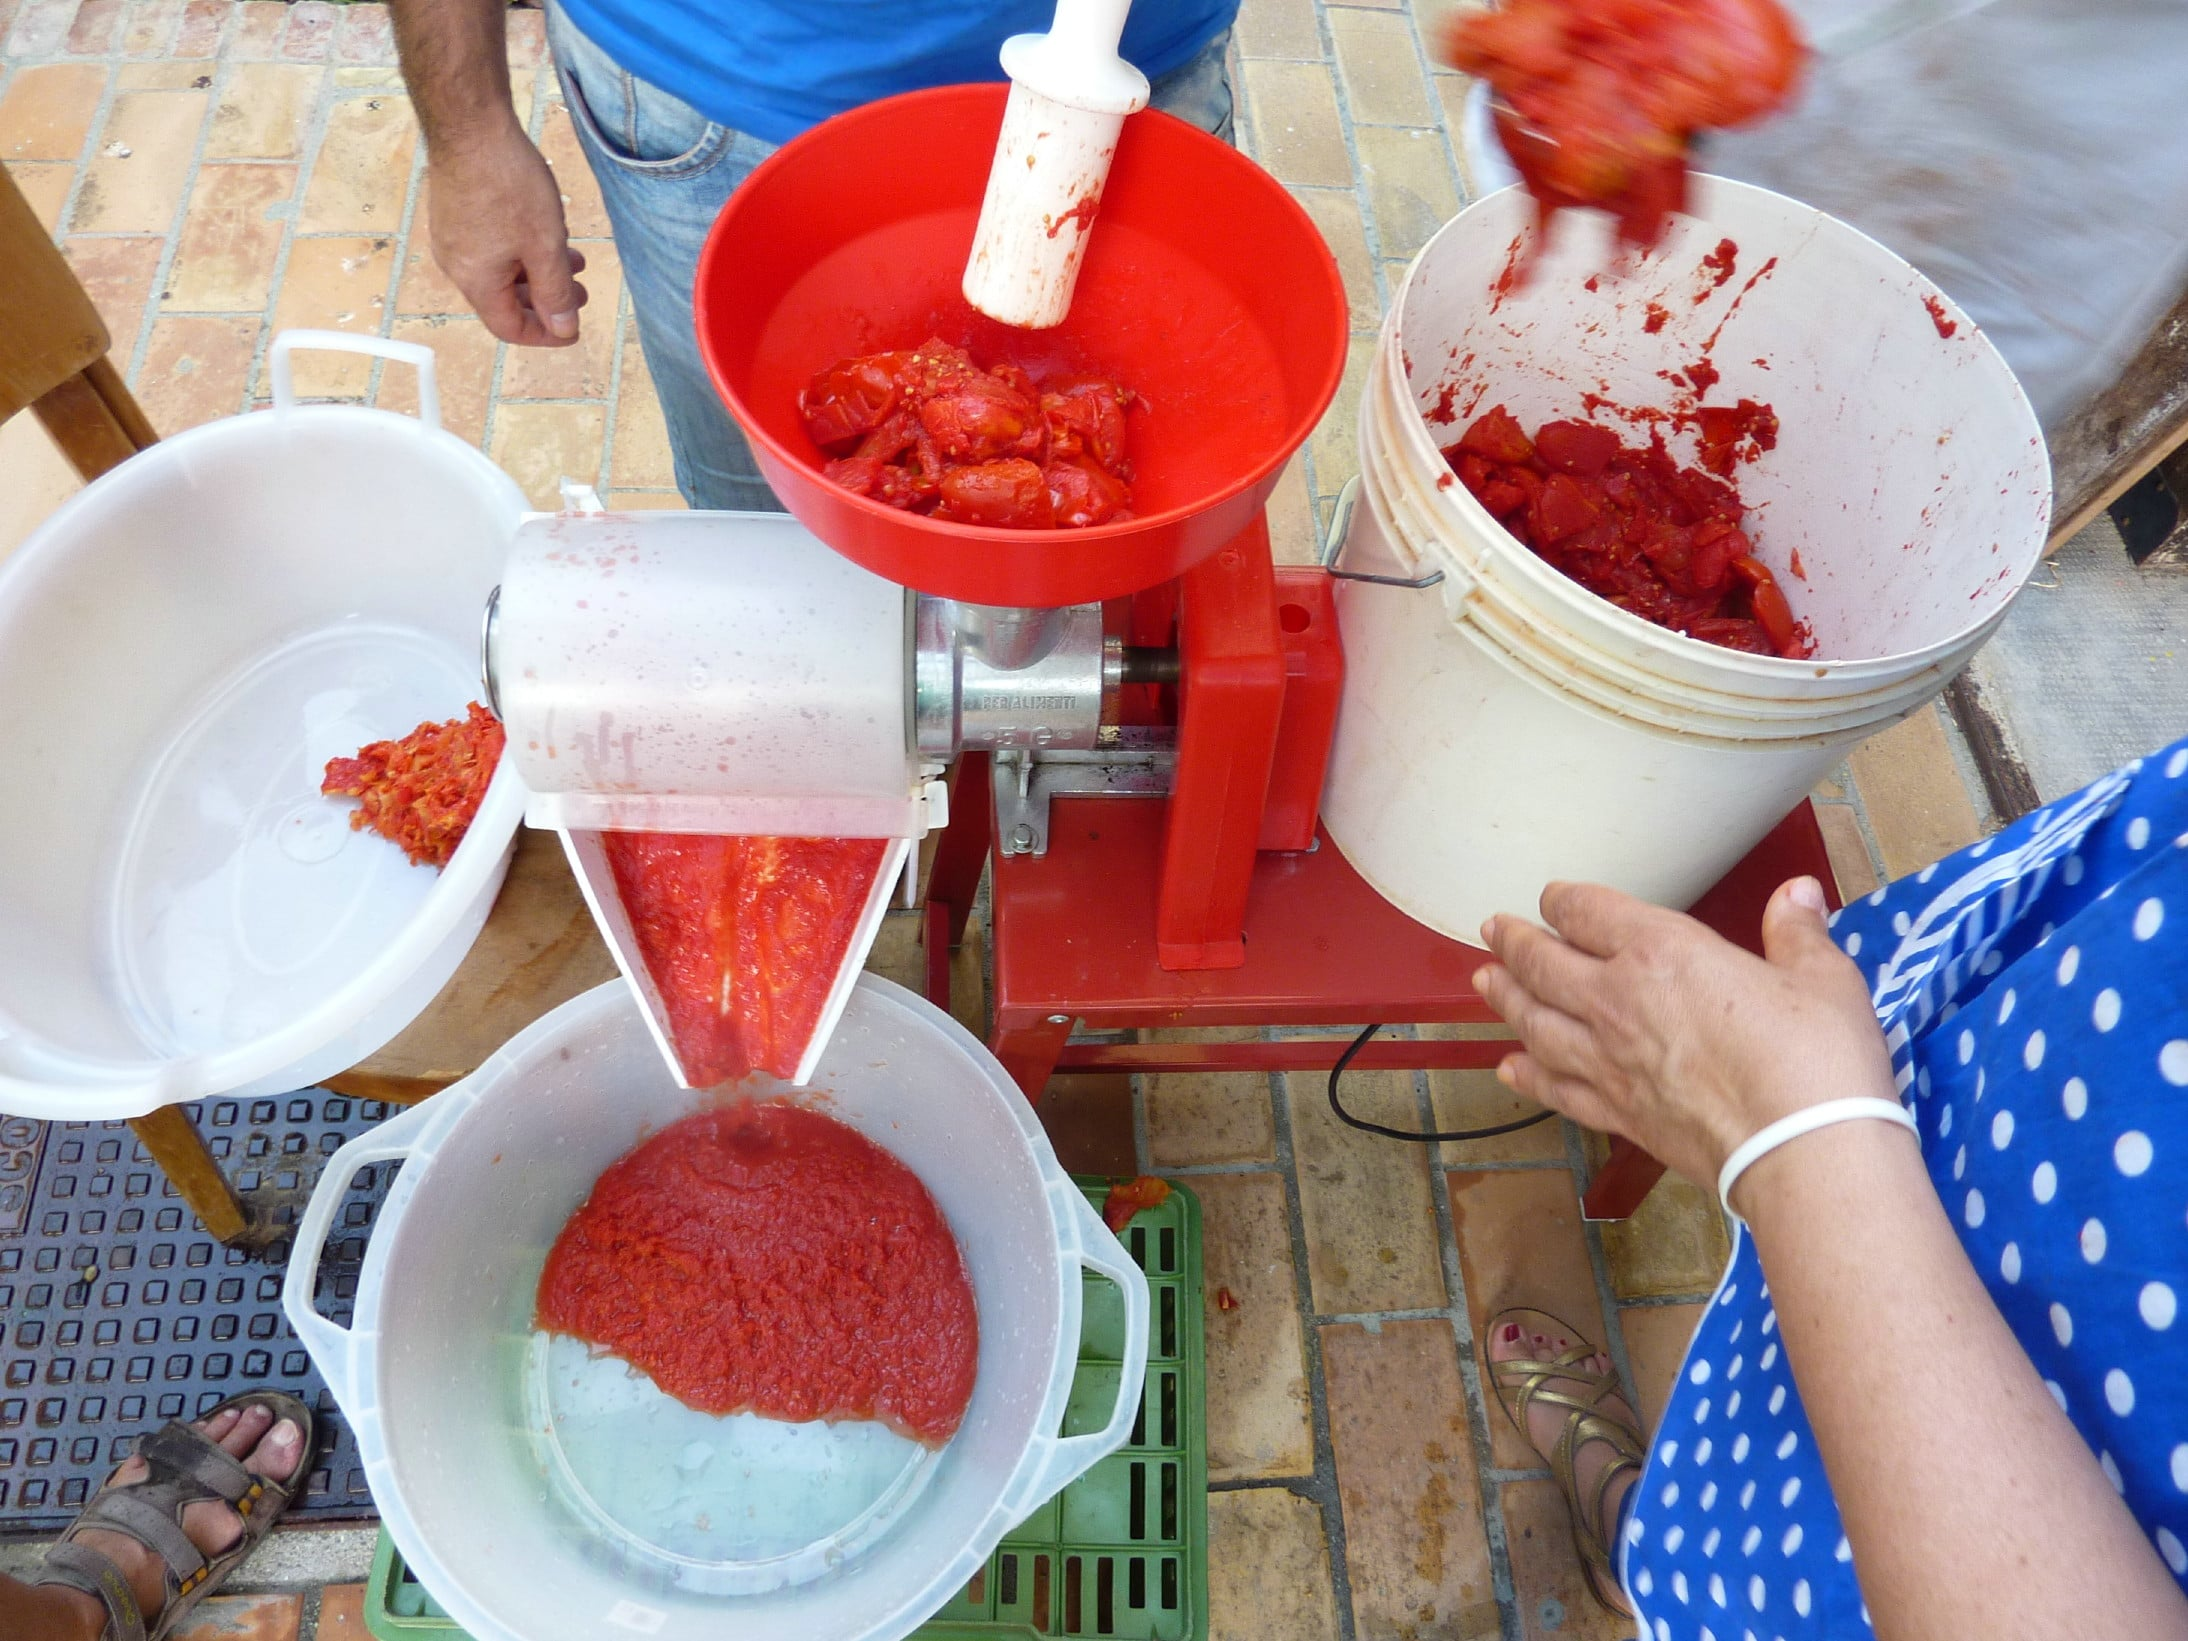 Grinding tomatoes in a grinding machine